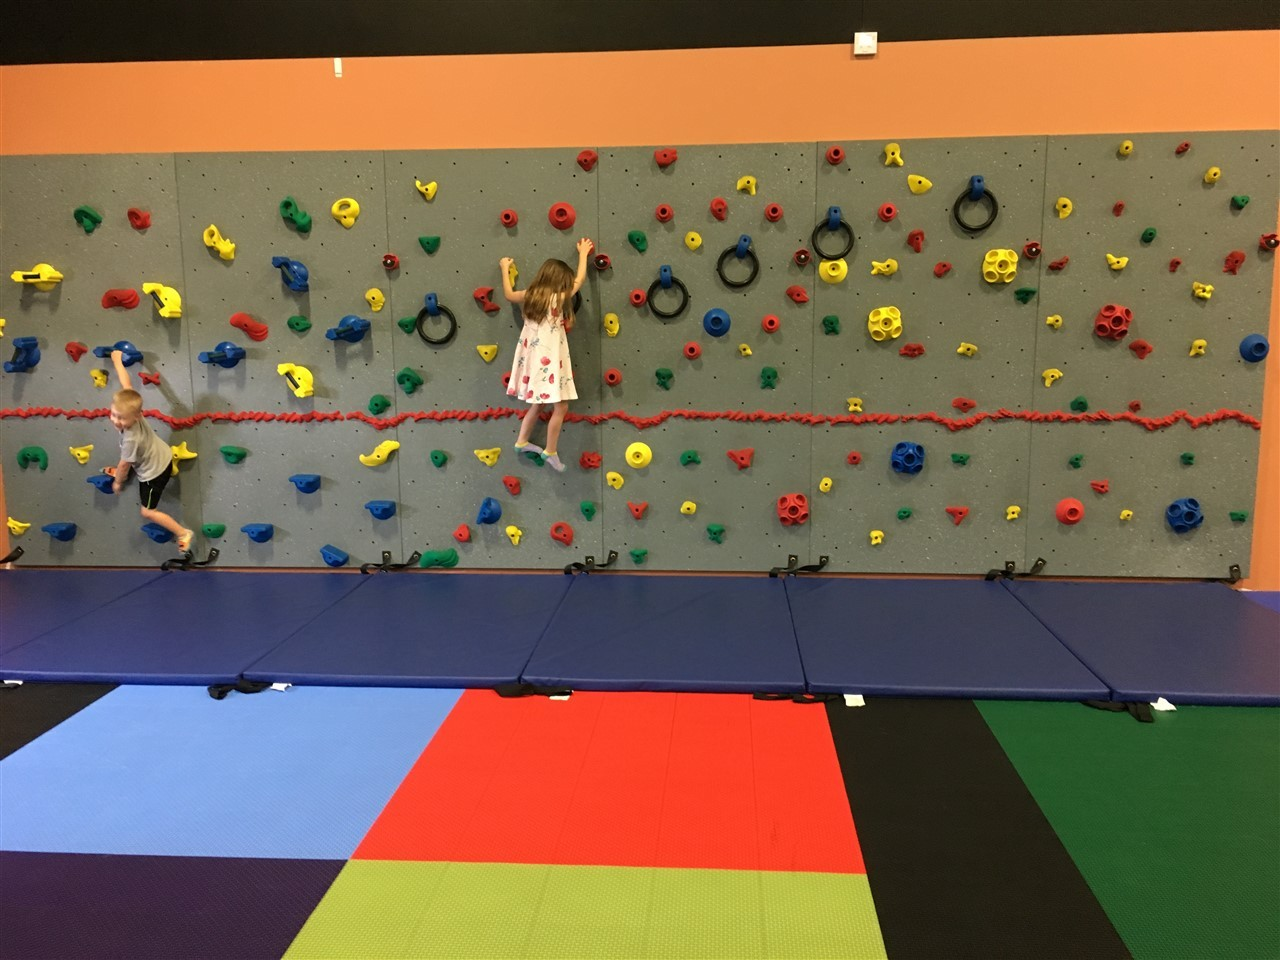 The traverse climbing wall at the Millz House Showroom in Apple Valley is one of the many products available.